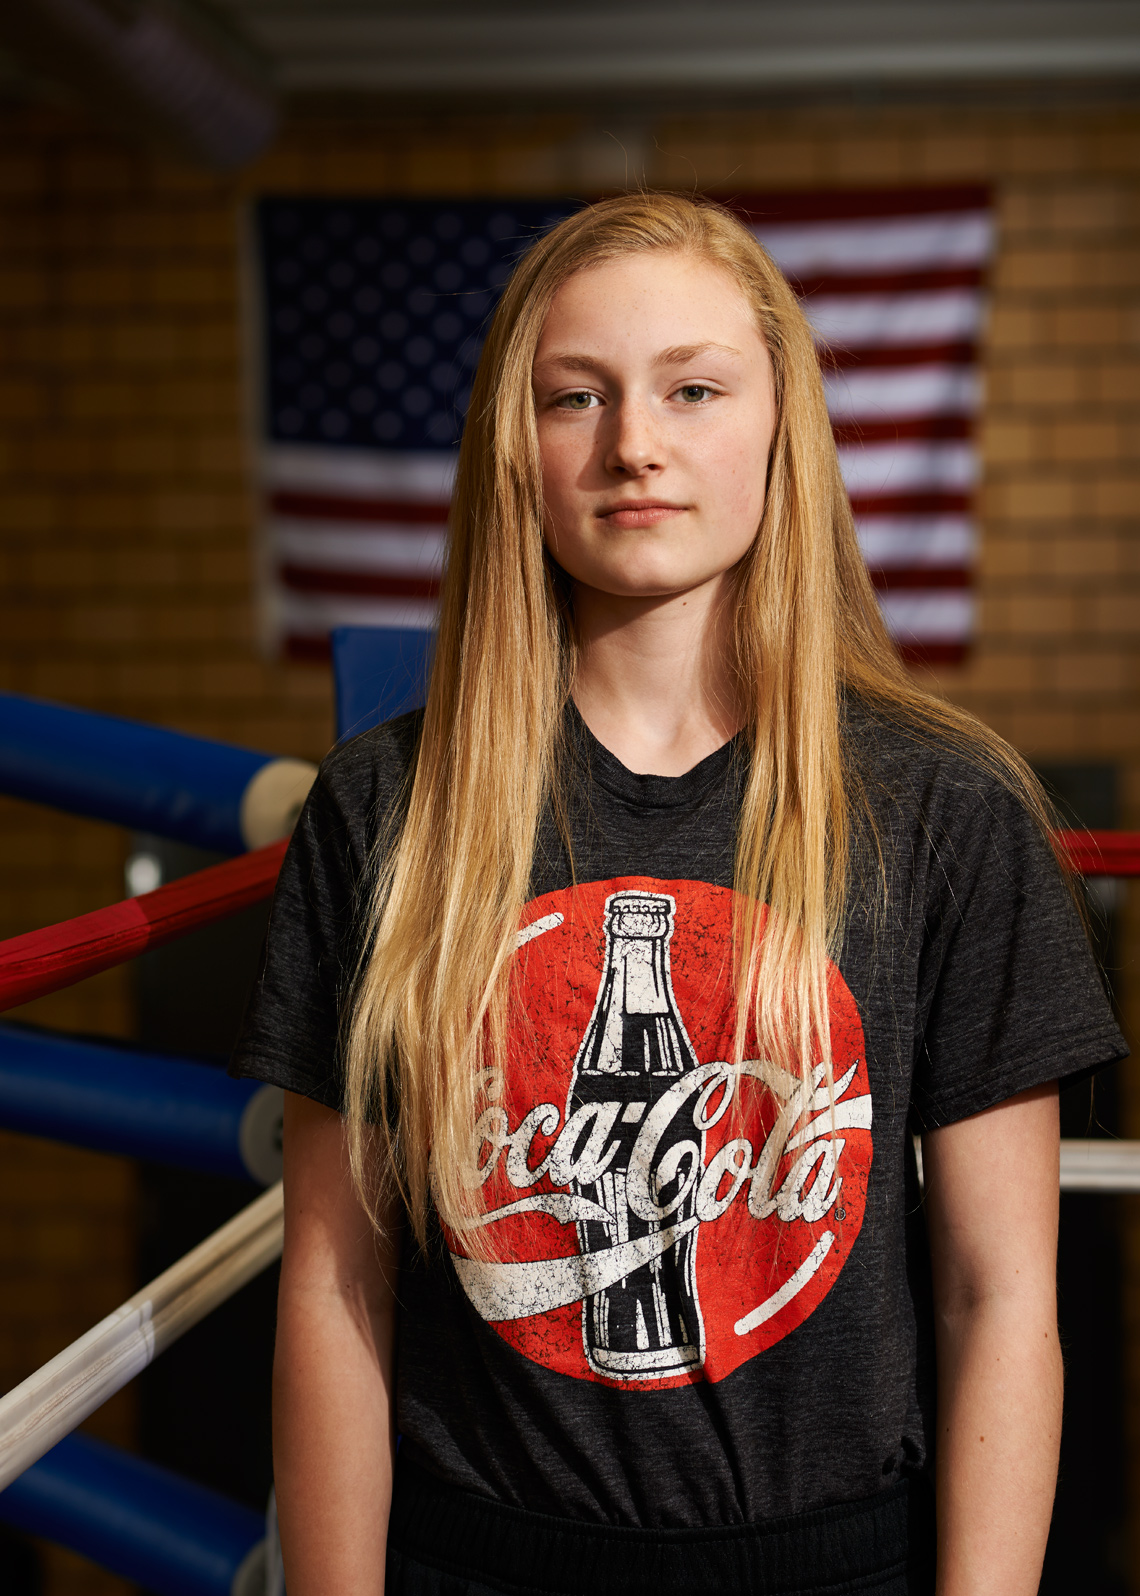 Blond teen girl in the boxing ring